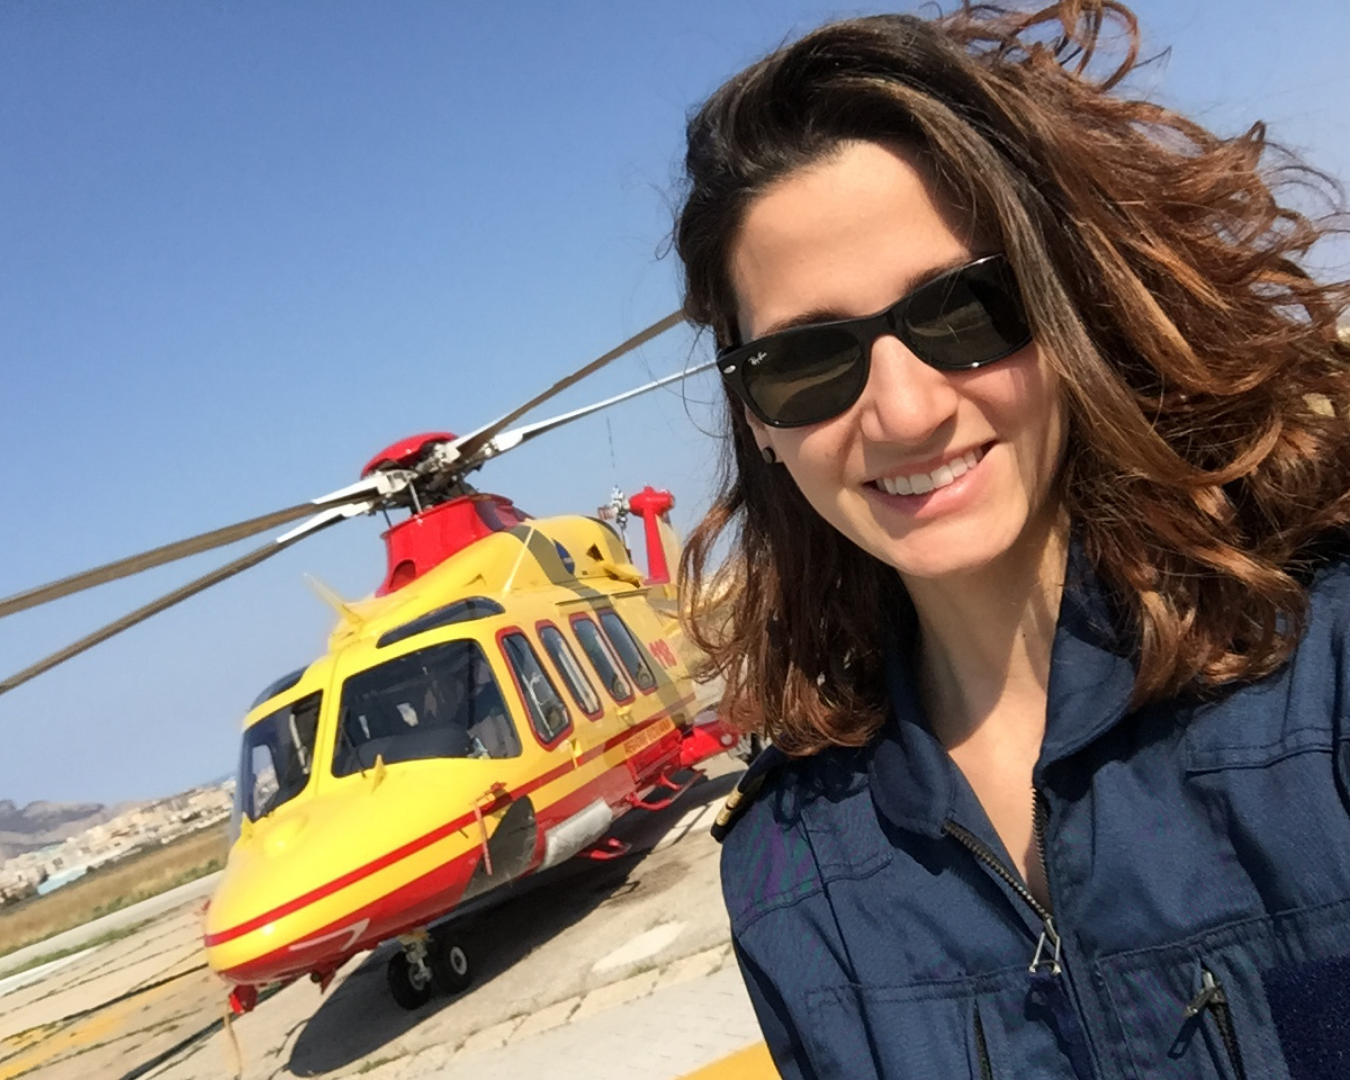 Helicopter Pilot Anna Parlagreco